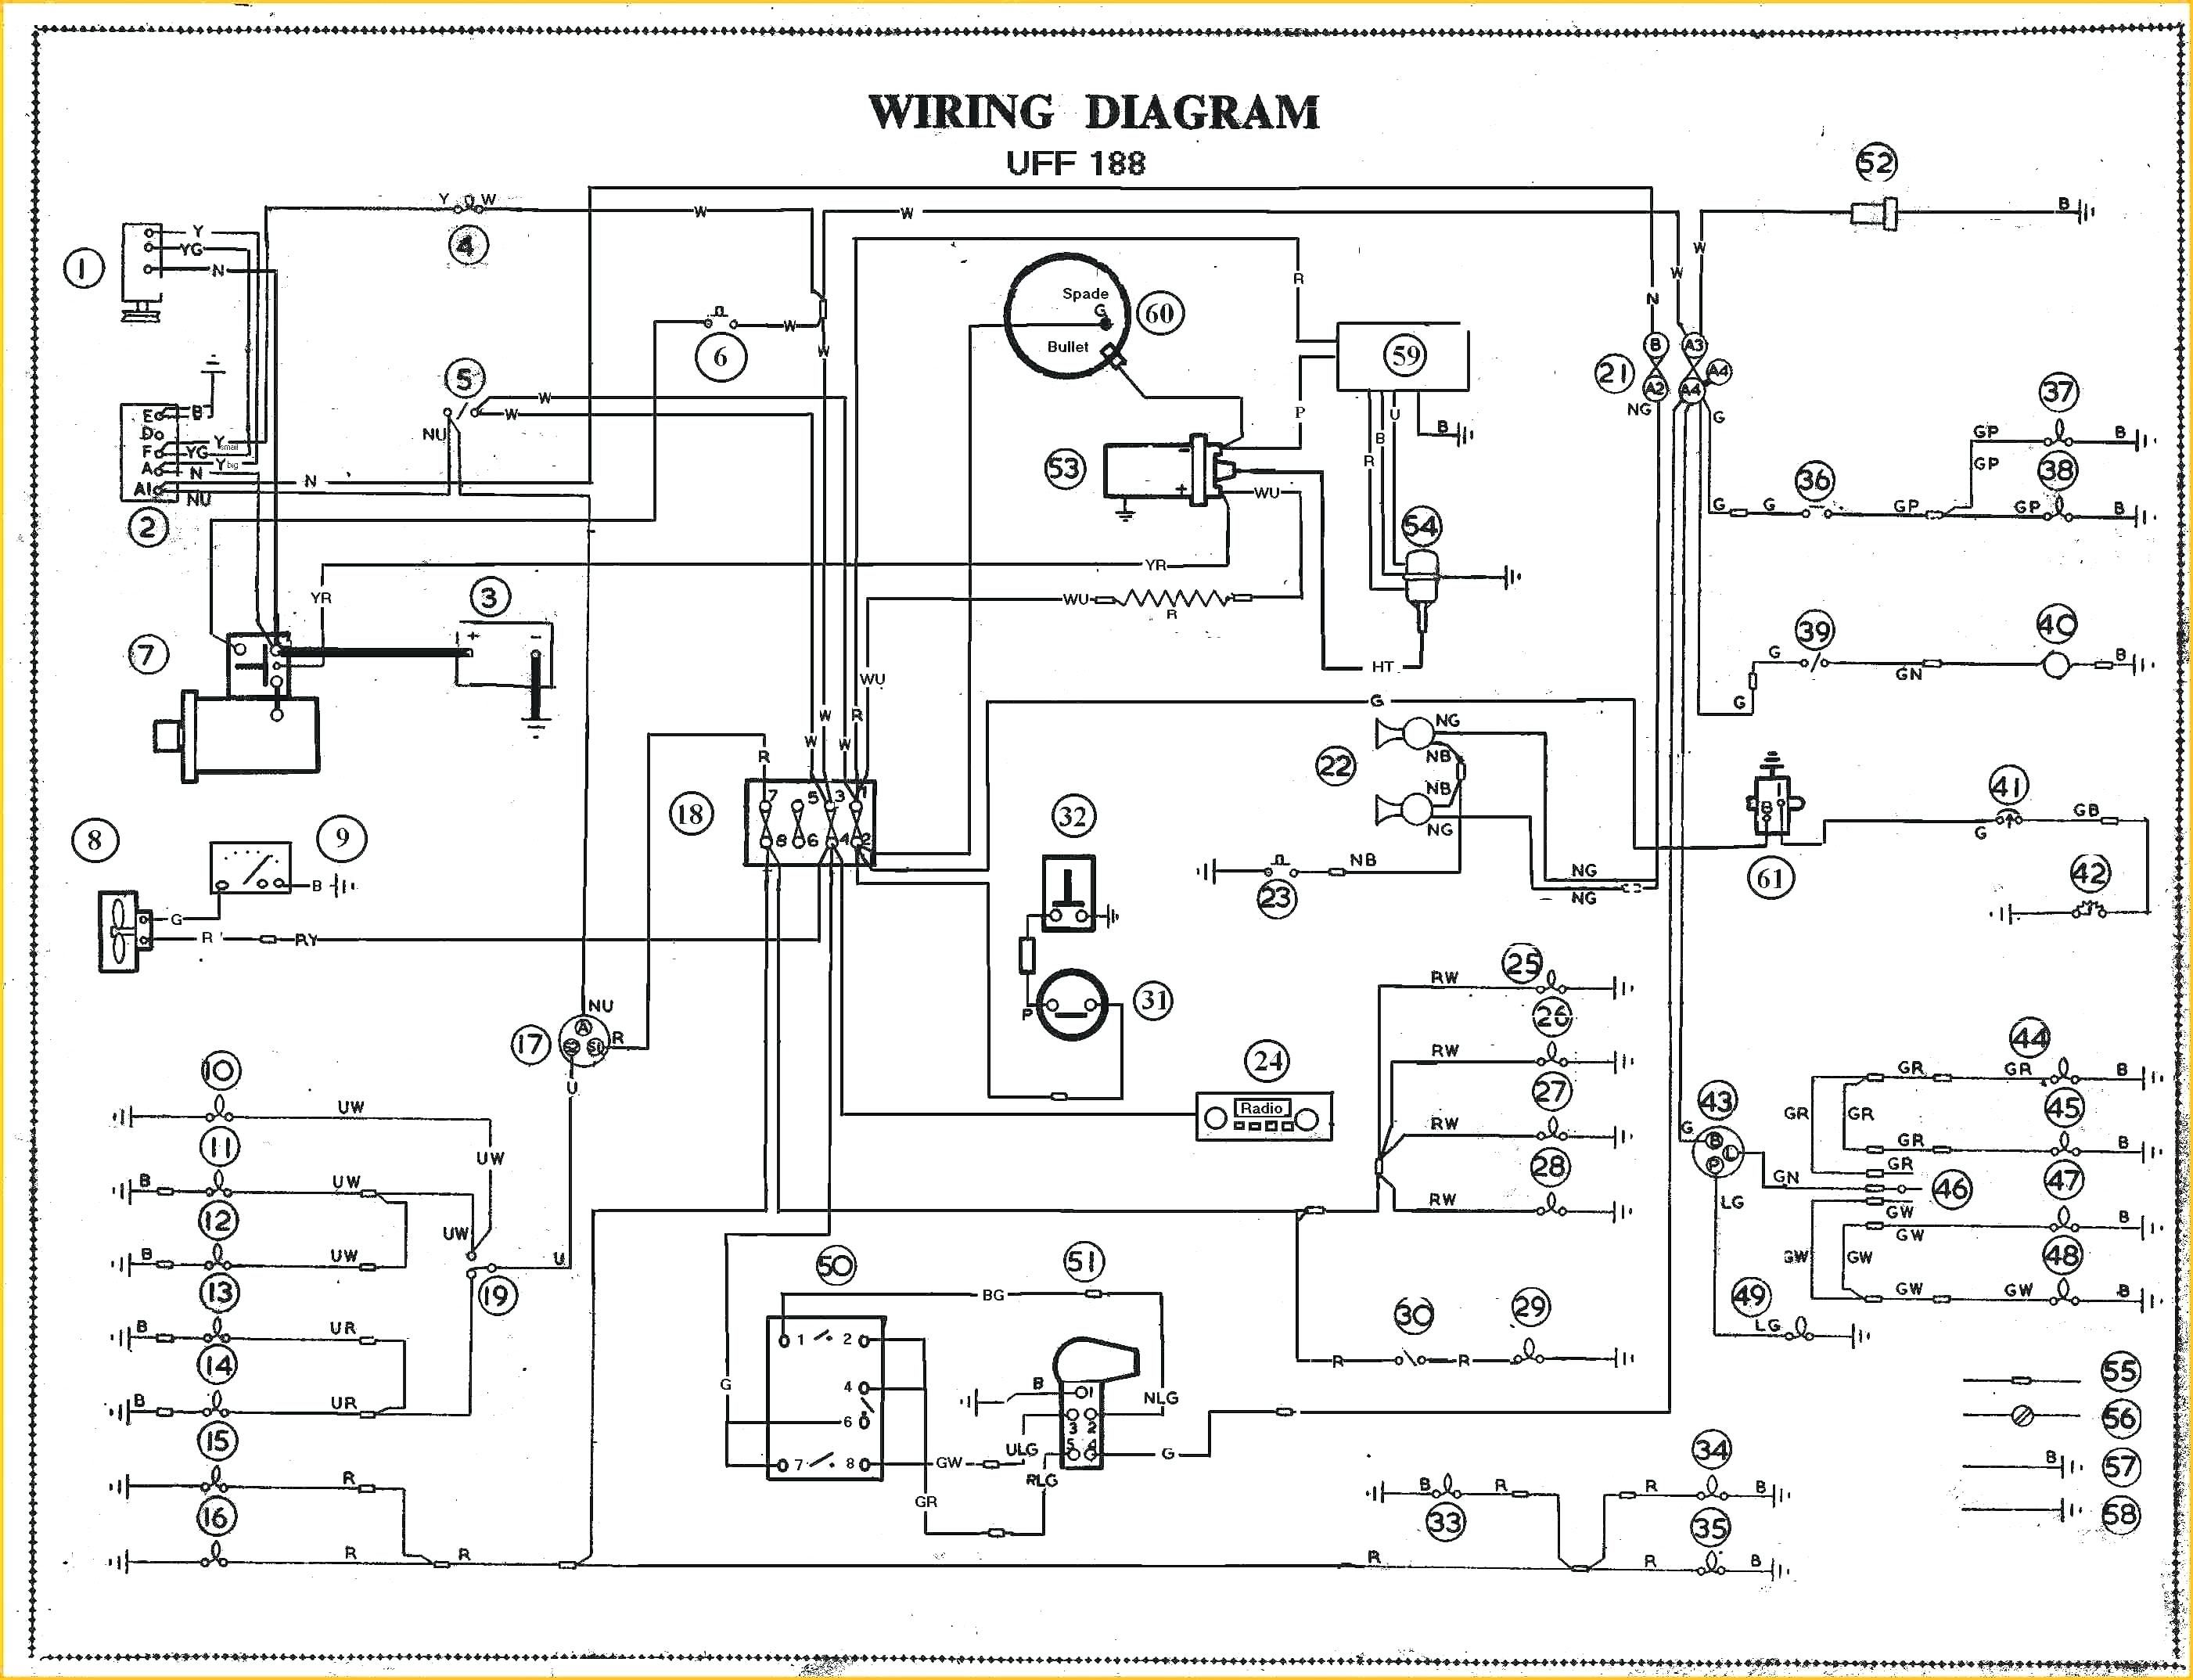 Basic Hvac Wiring Diagrams Schematics At Diagram Pdf | Diagram, Diagram  design, Hvac | Hvac Electrical Wiring Diagram |  | Pinterest